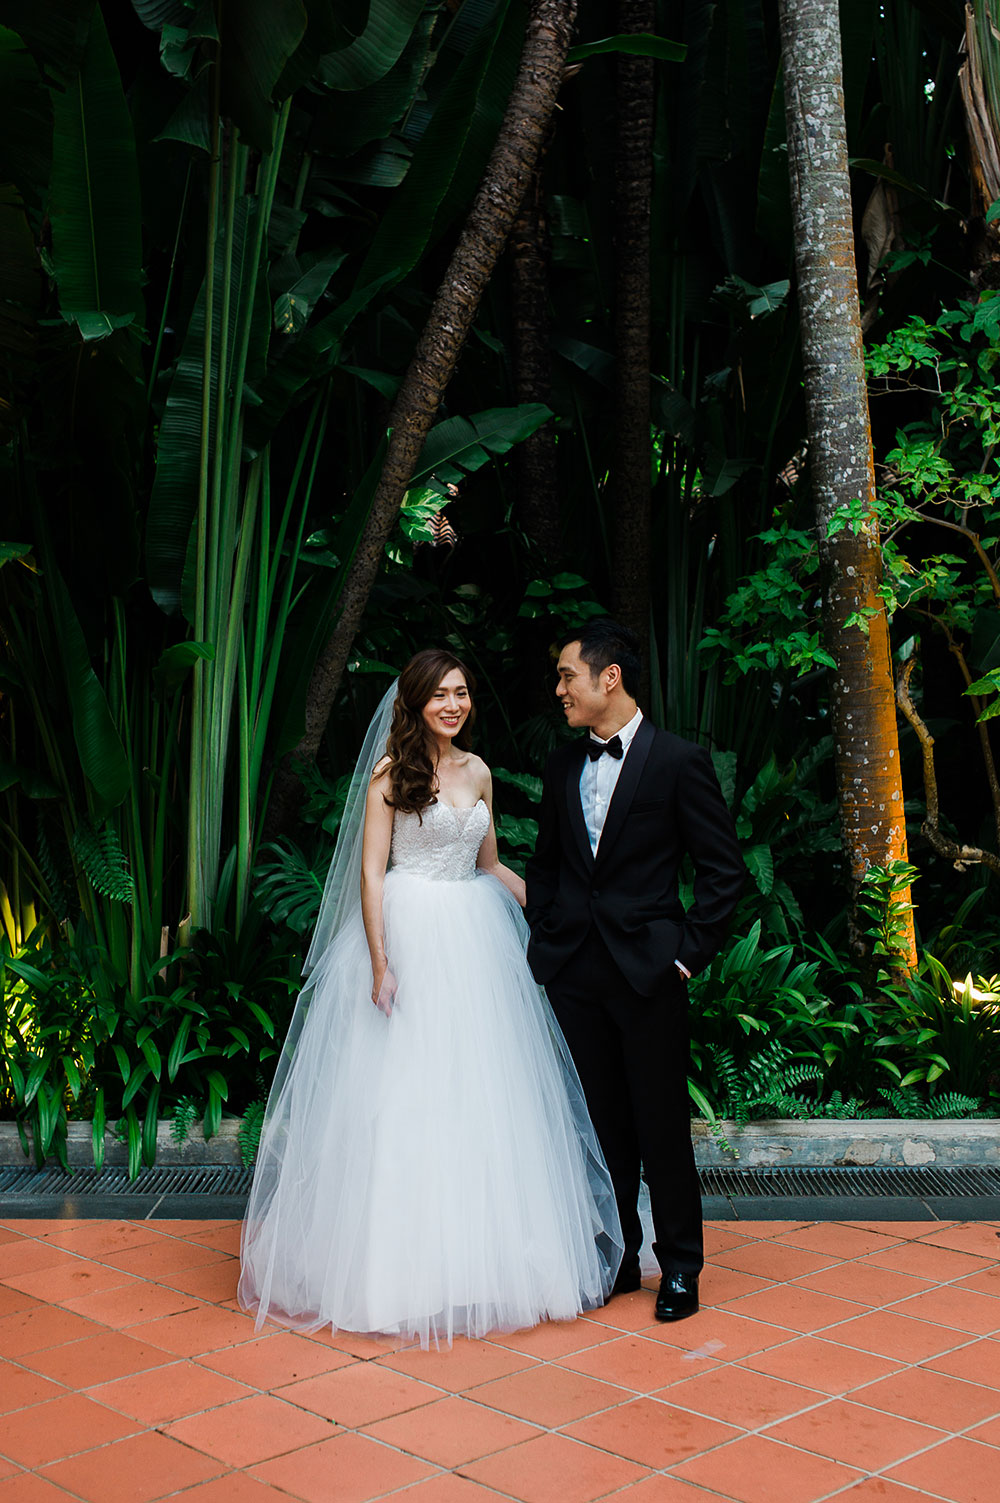 Singaore-Raffles-Hotel-Wedding-formal-portrait